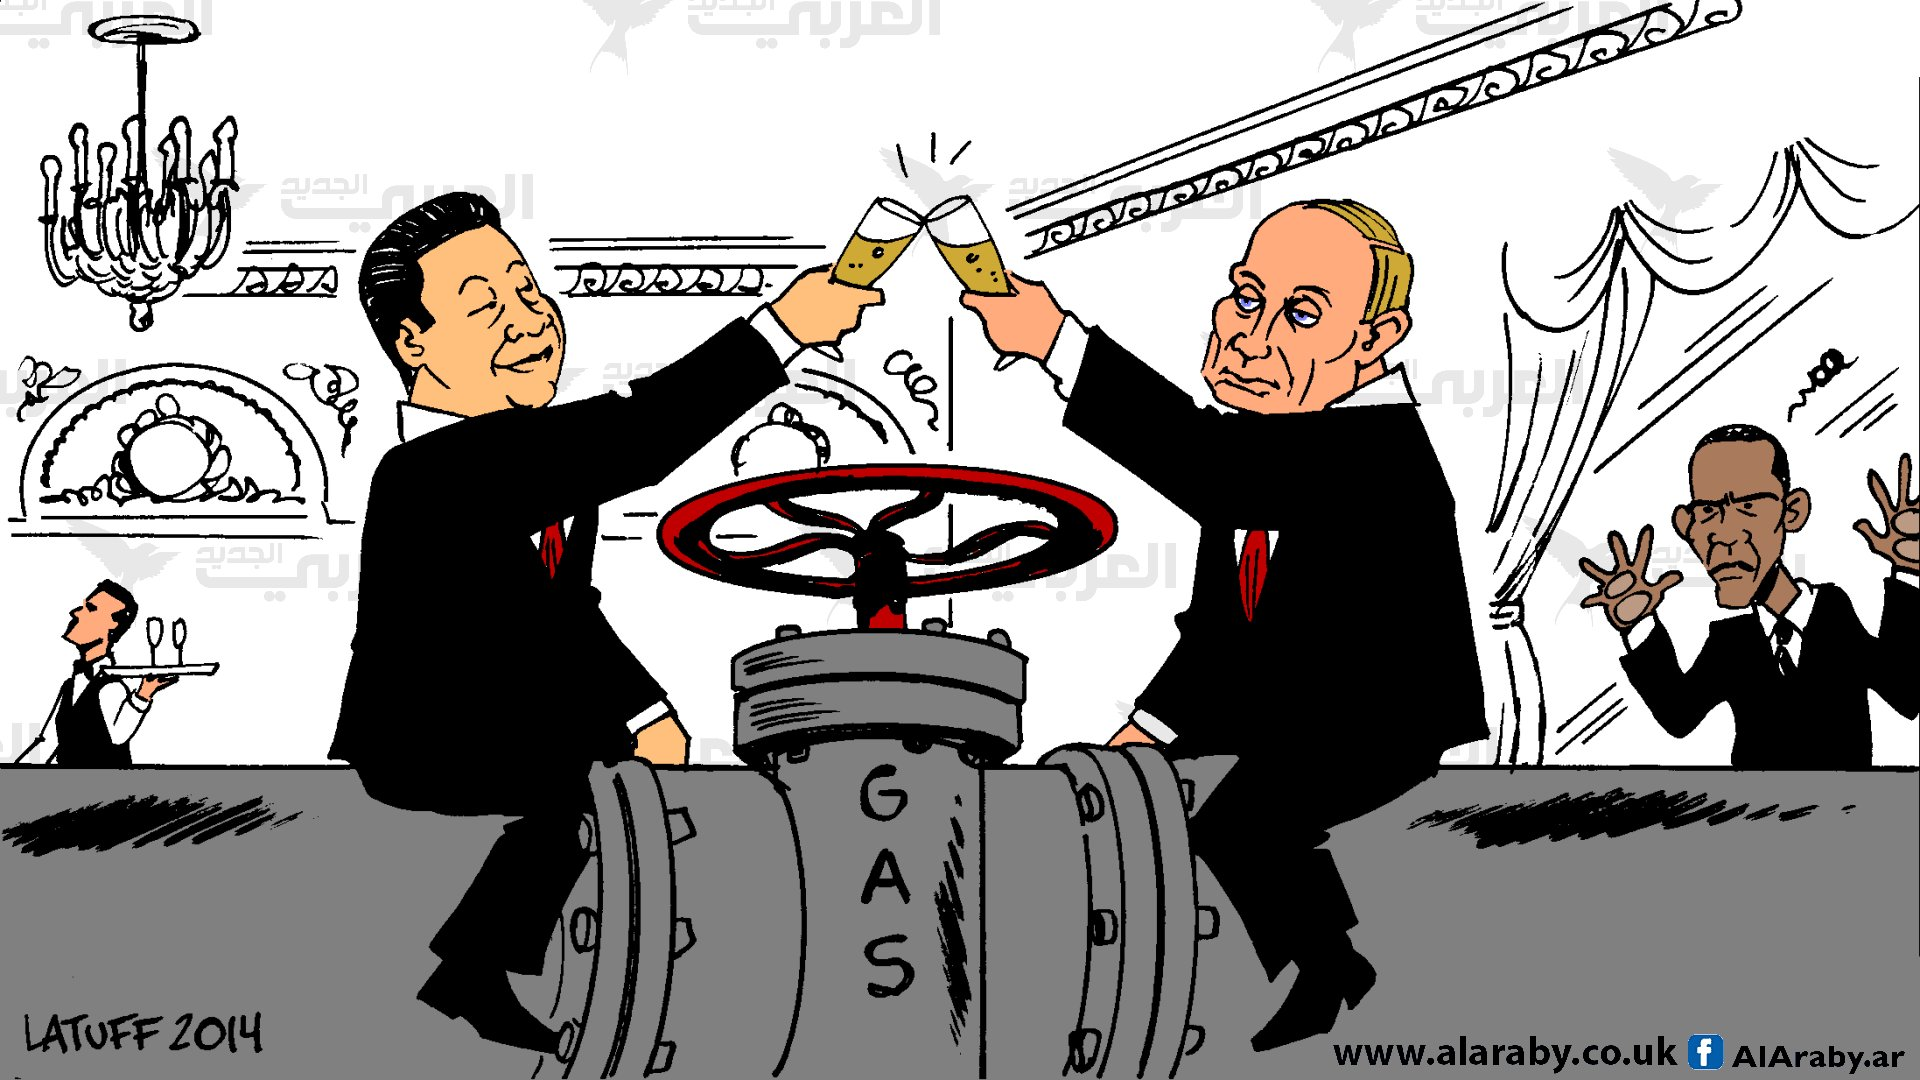 https://latuffcartoons.files.wordpress.com/2014/05/china-russia-gas-deal-al-araby.jpg